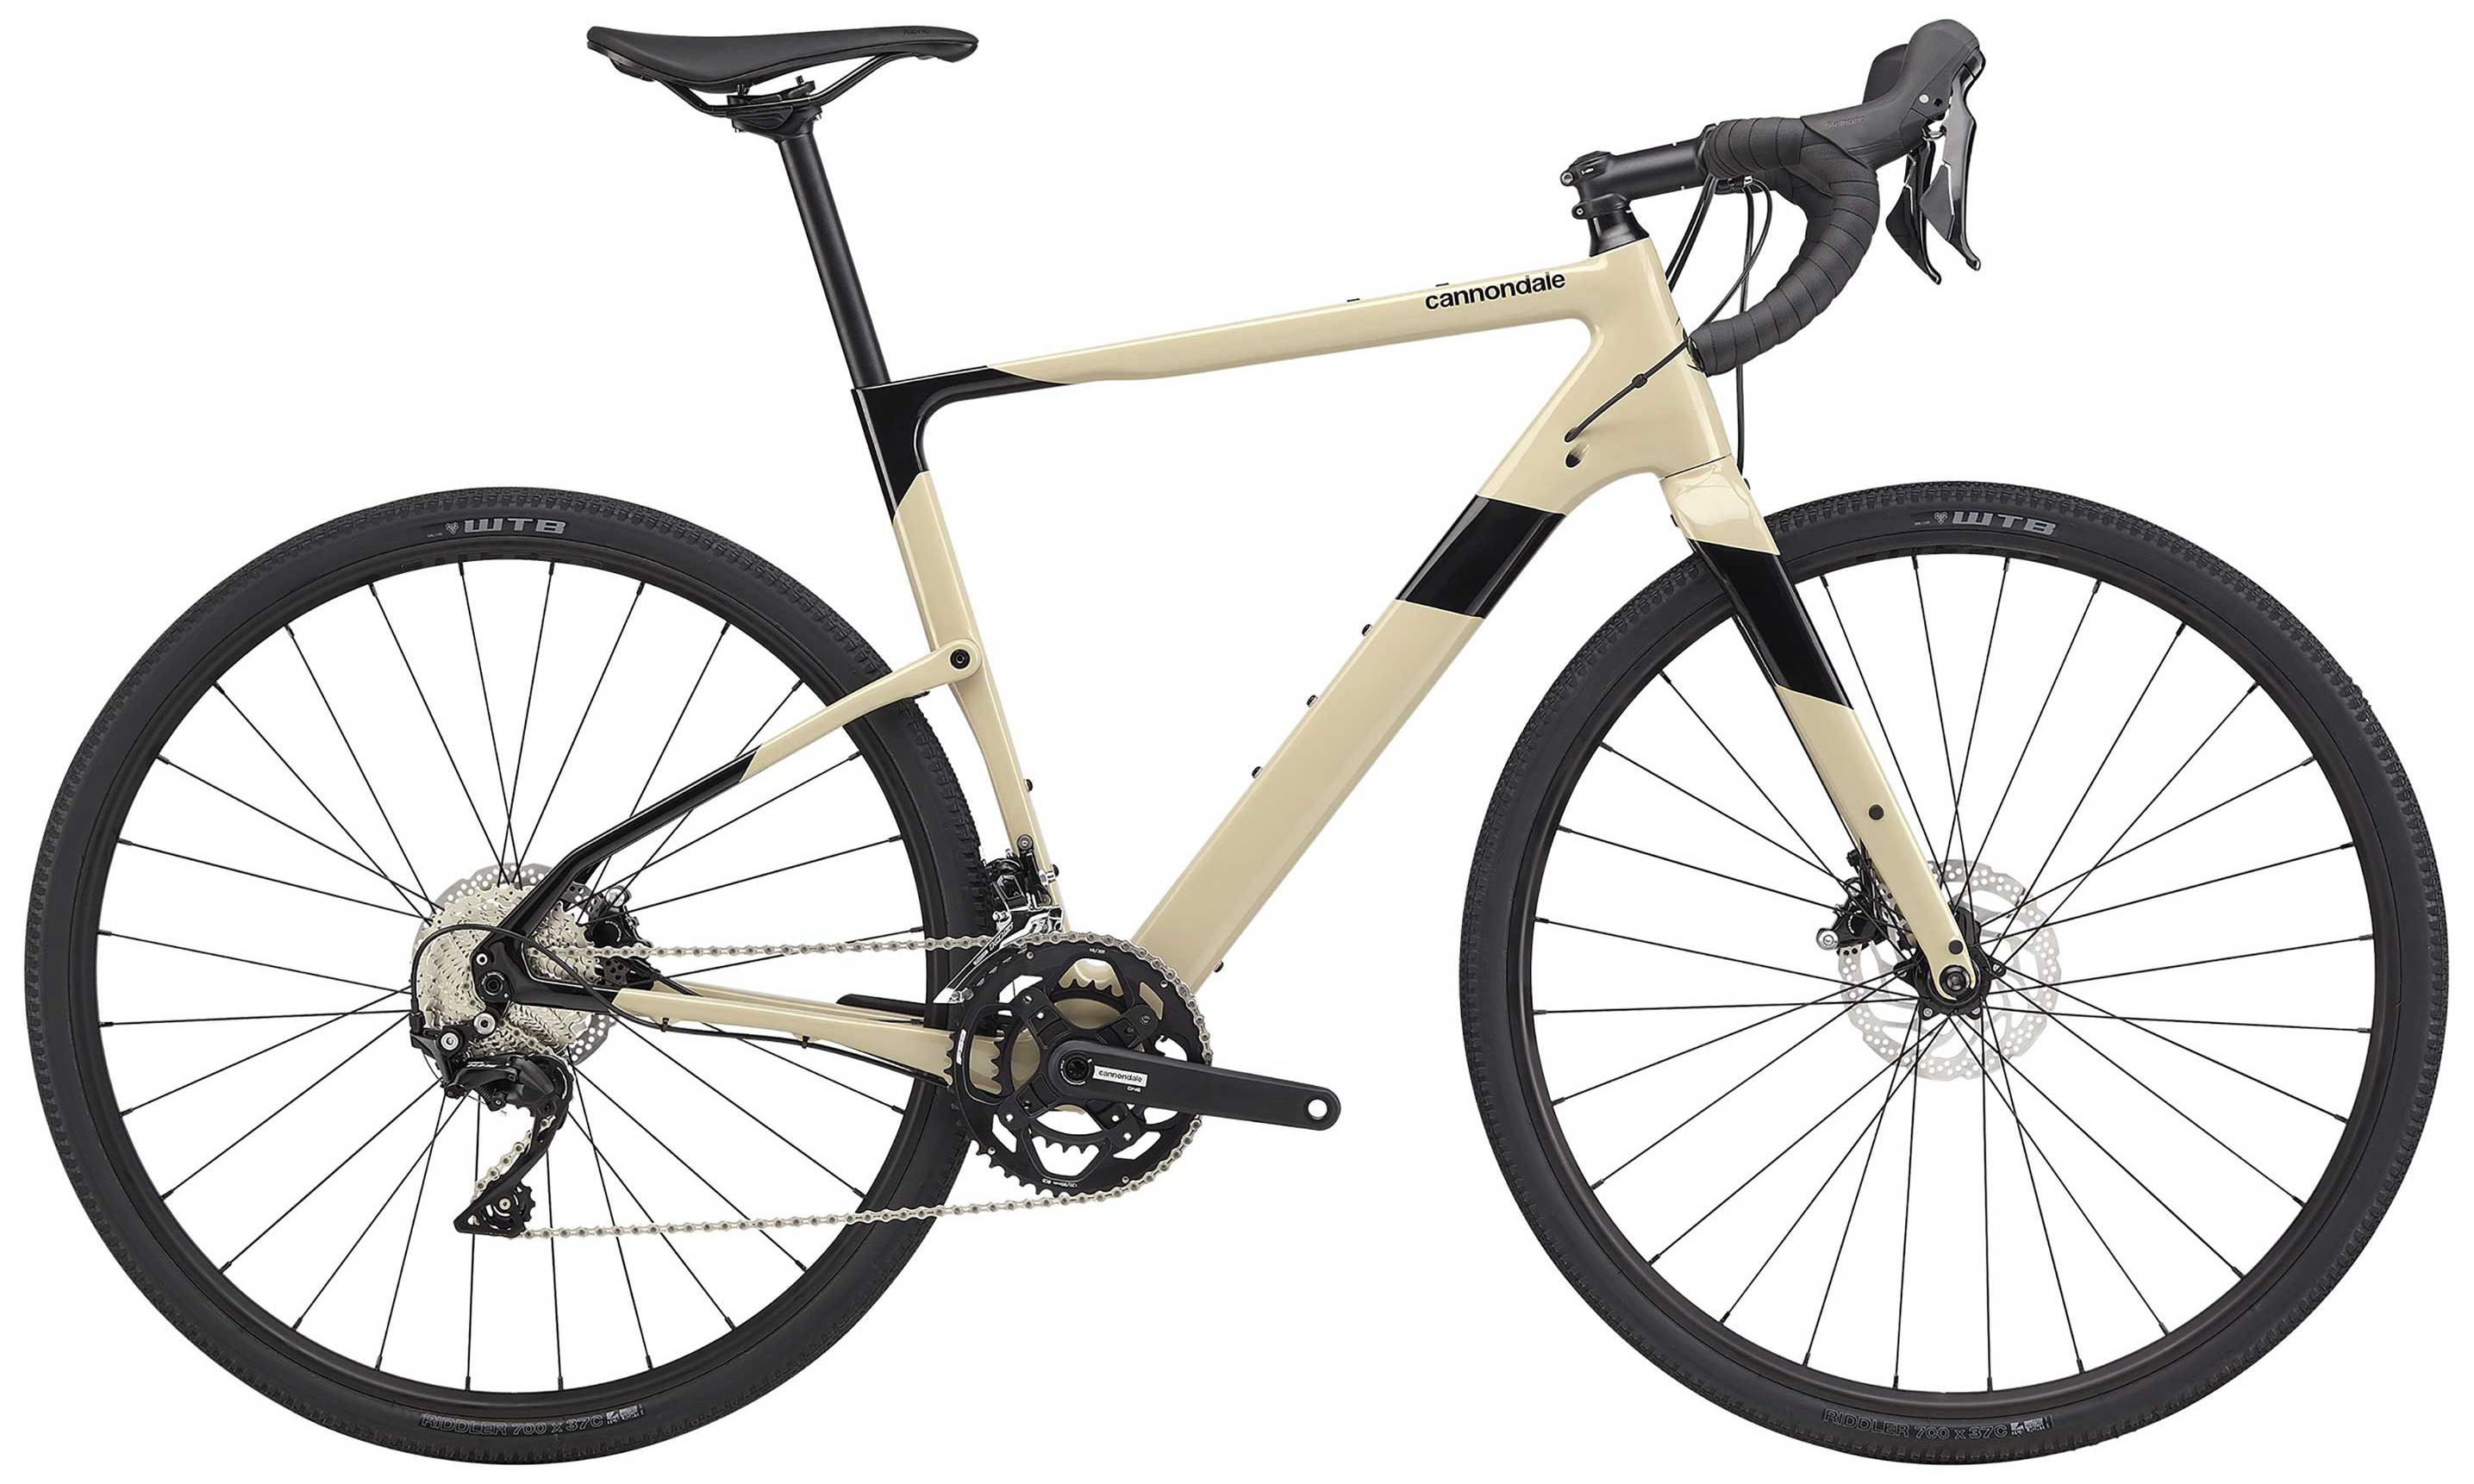 Cannondale Topstone preview: 'It'll cope with anything'